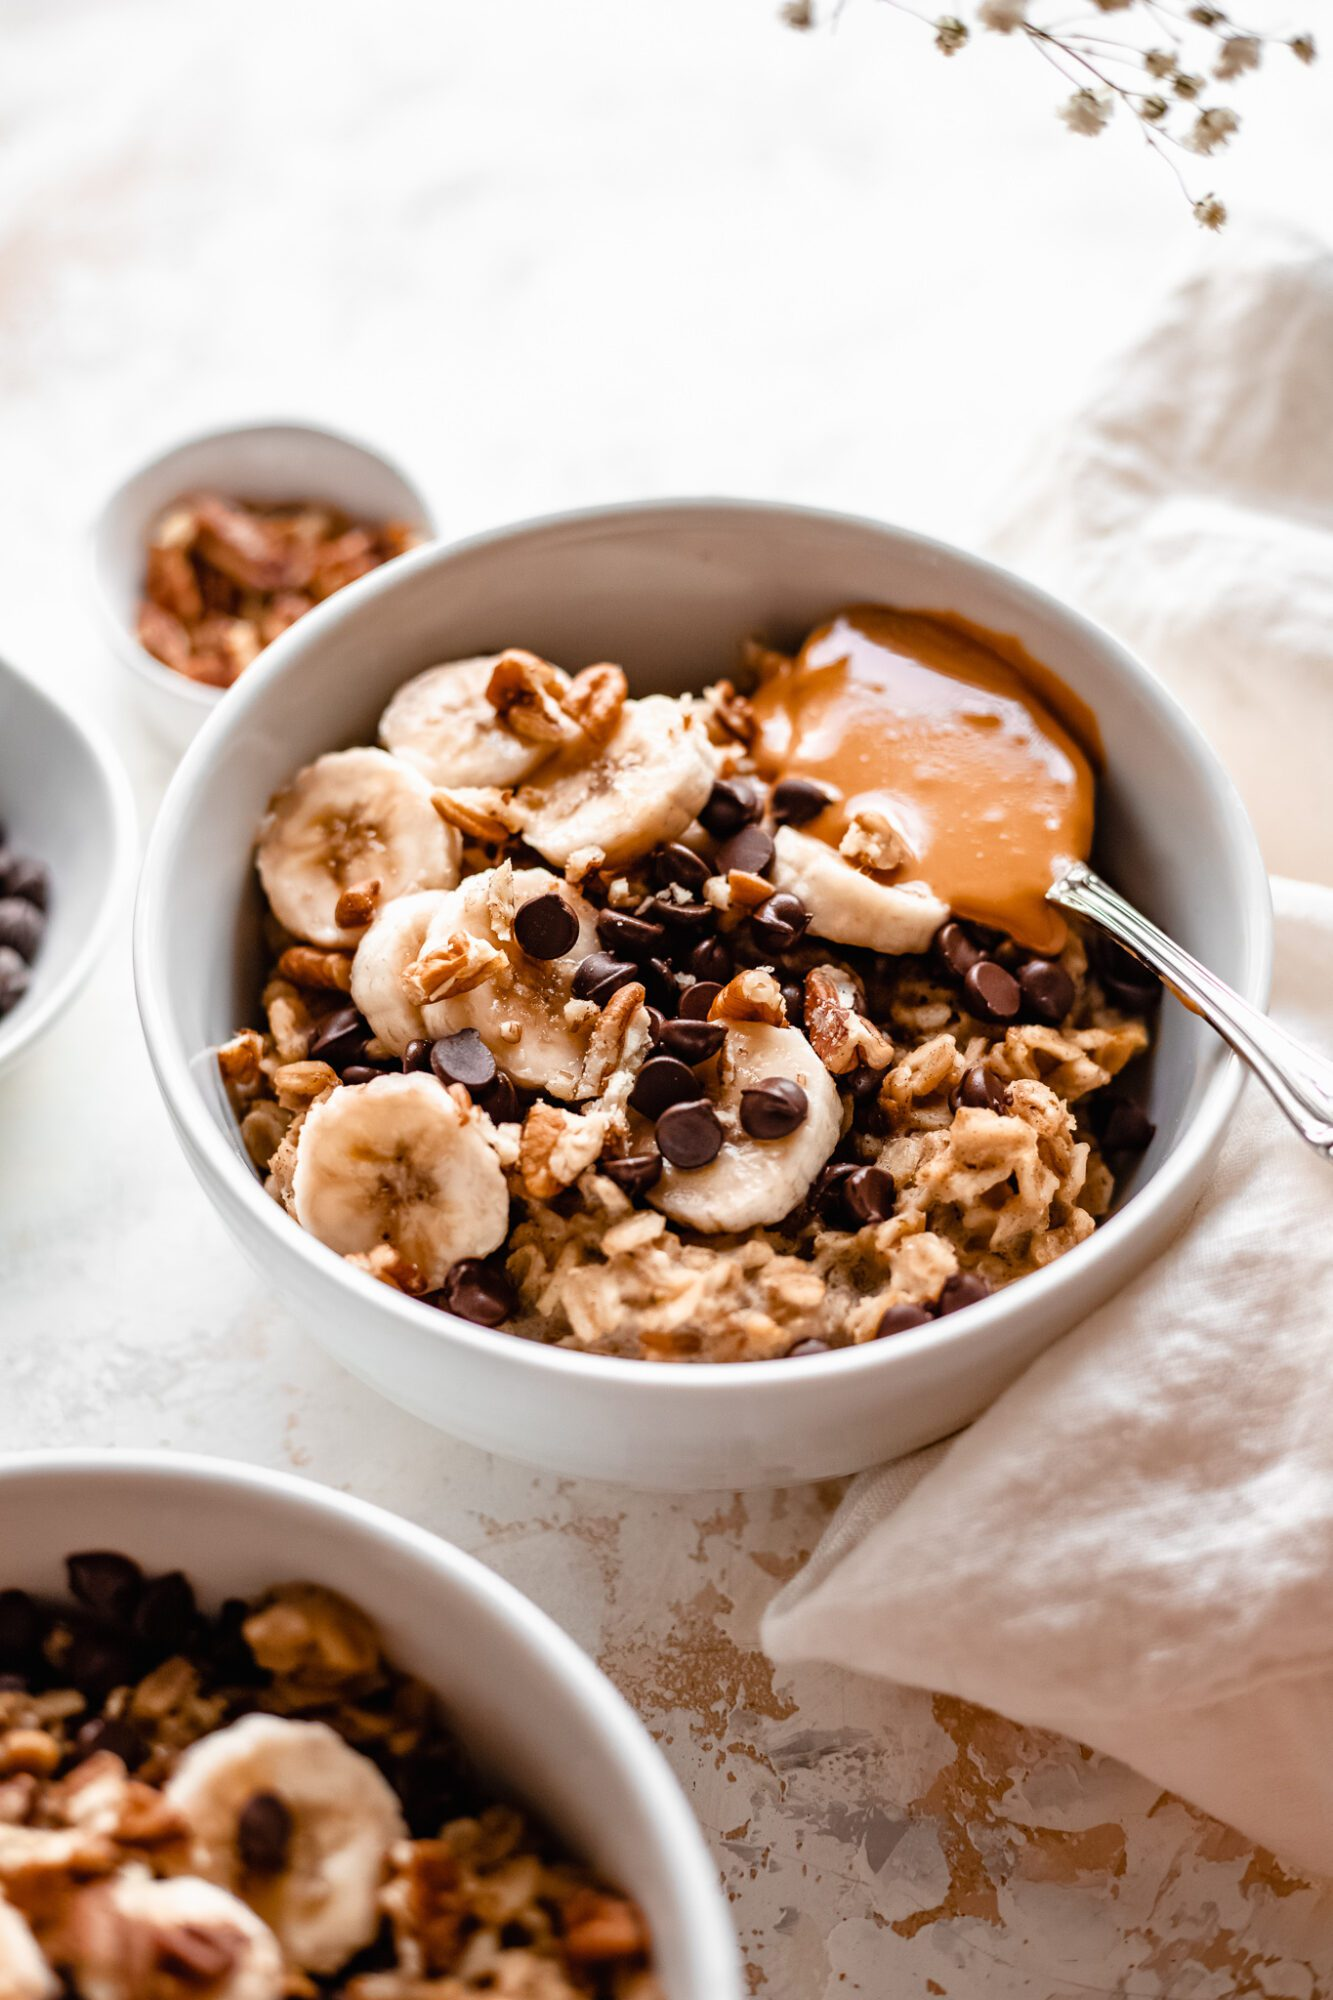 bowls of zucchini oatmeal with chocolate chips